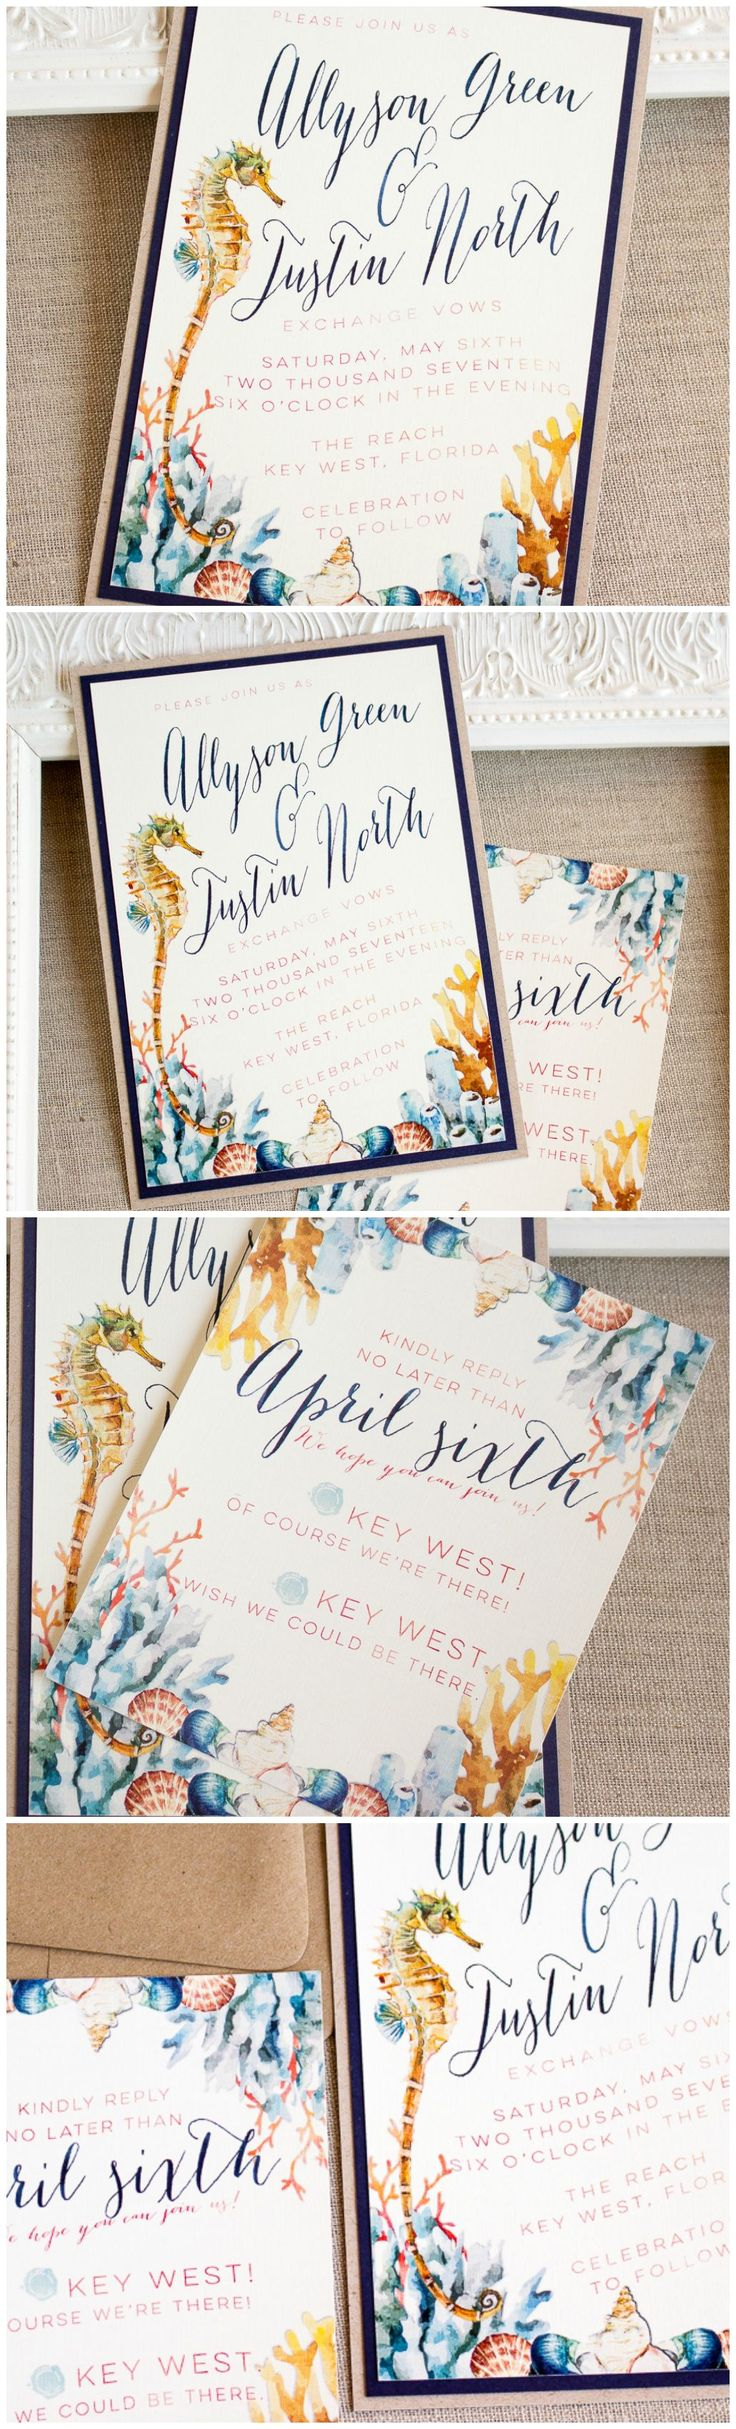 beach wedding invitation examples%0A How To Word Wedding Invitations